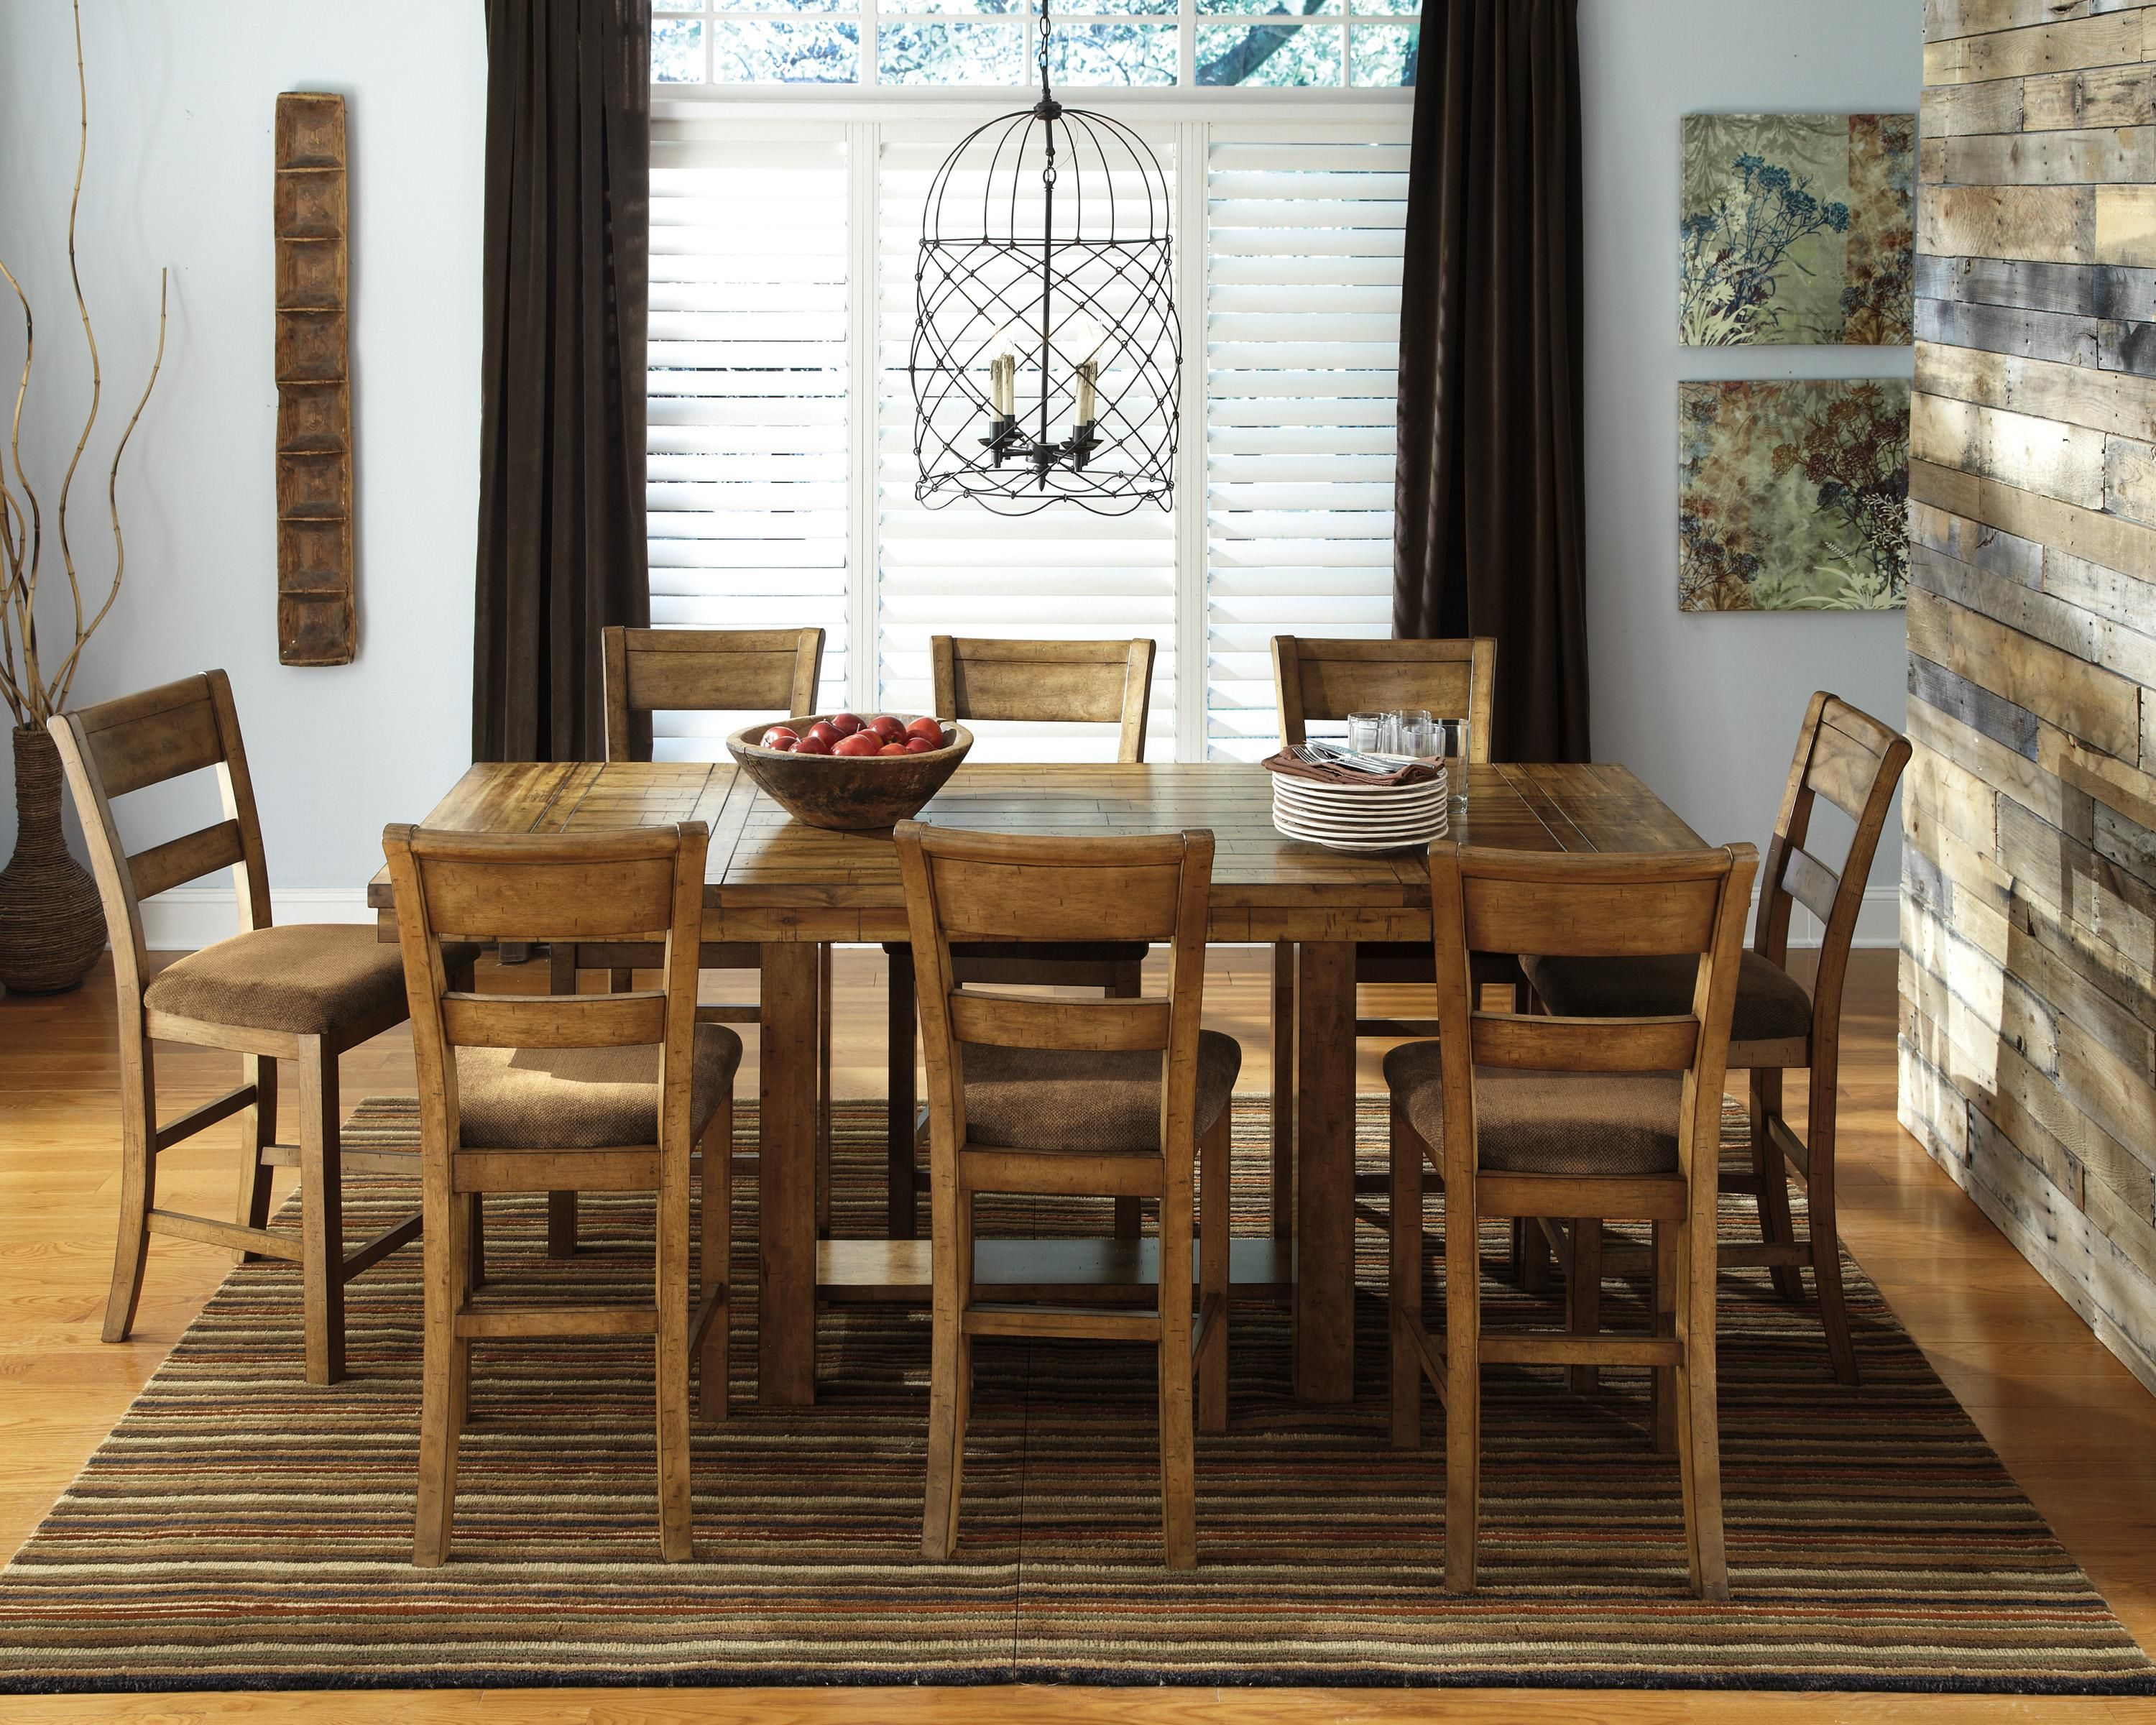 Pin By Jennifer Jenkins Rhodes On Stuff To Buy Dining Room Table Set Counter Height Dining Room Tables Casual Dining Room Set